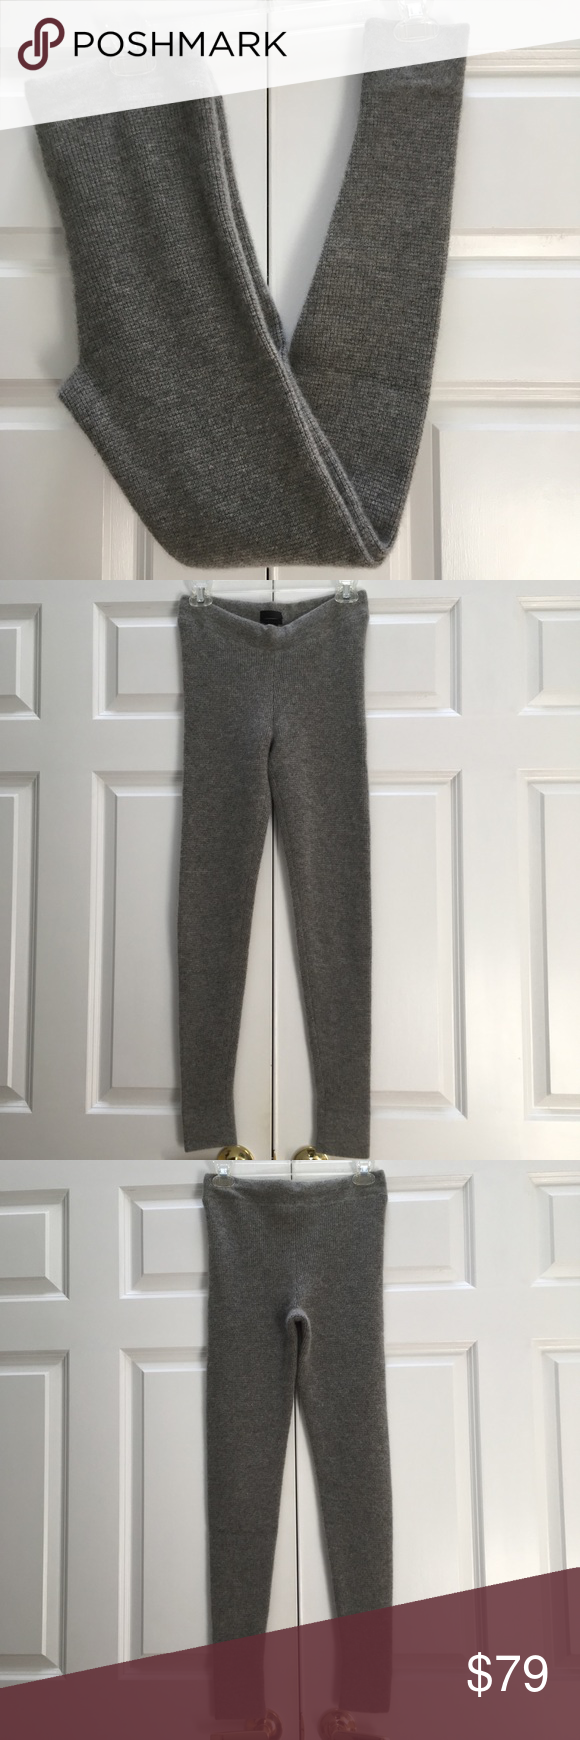 3891cc5521734 J Crew Collection Italian Cashmere Waffle Leggings J Crew Collection 100% Italian  cashmere waffle knit